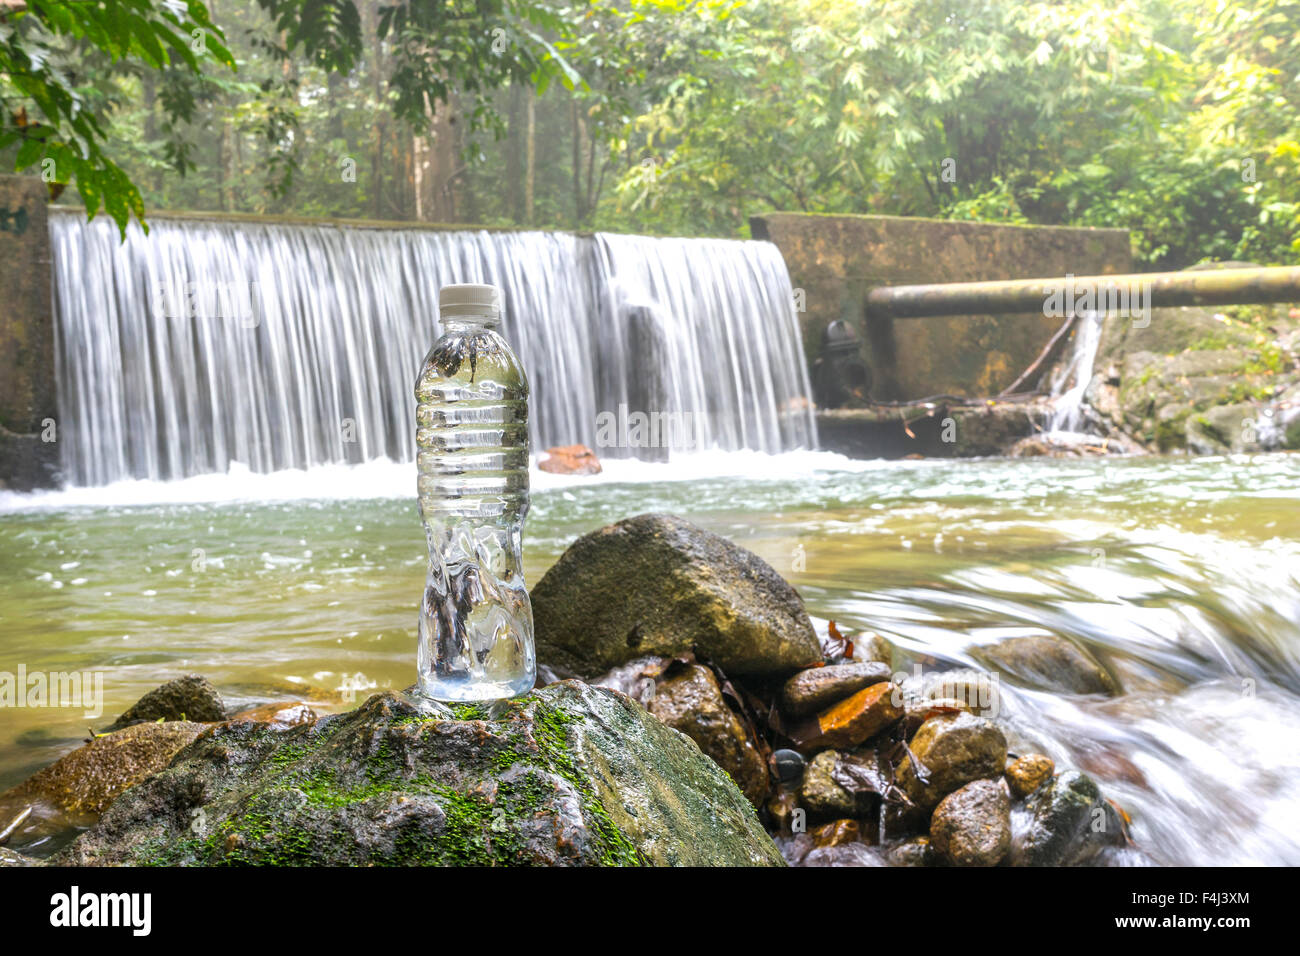 Plastic bottle with waterfall background at tropical forest Stock Photo